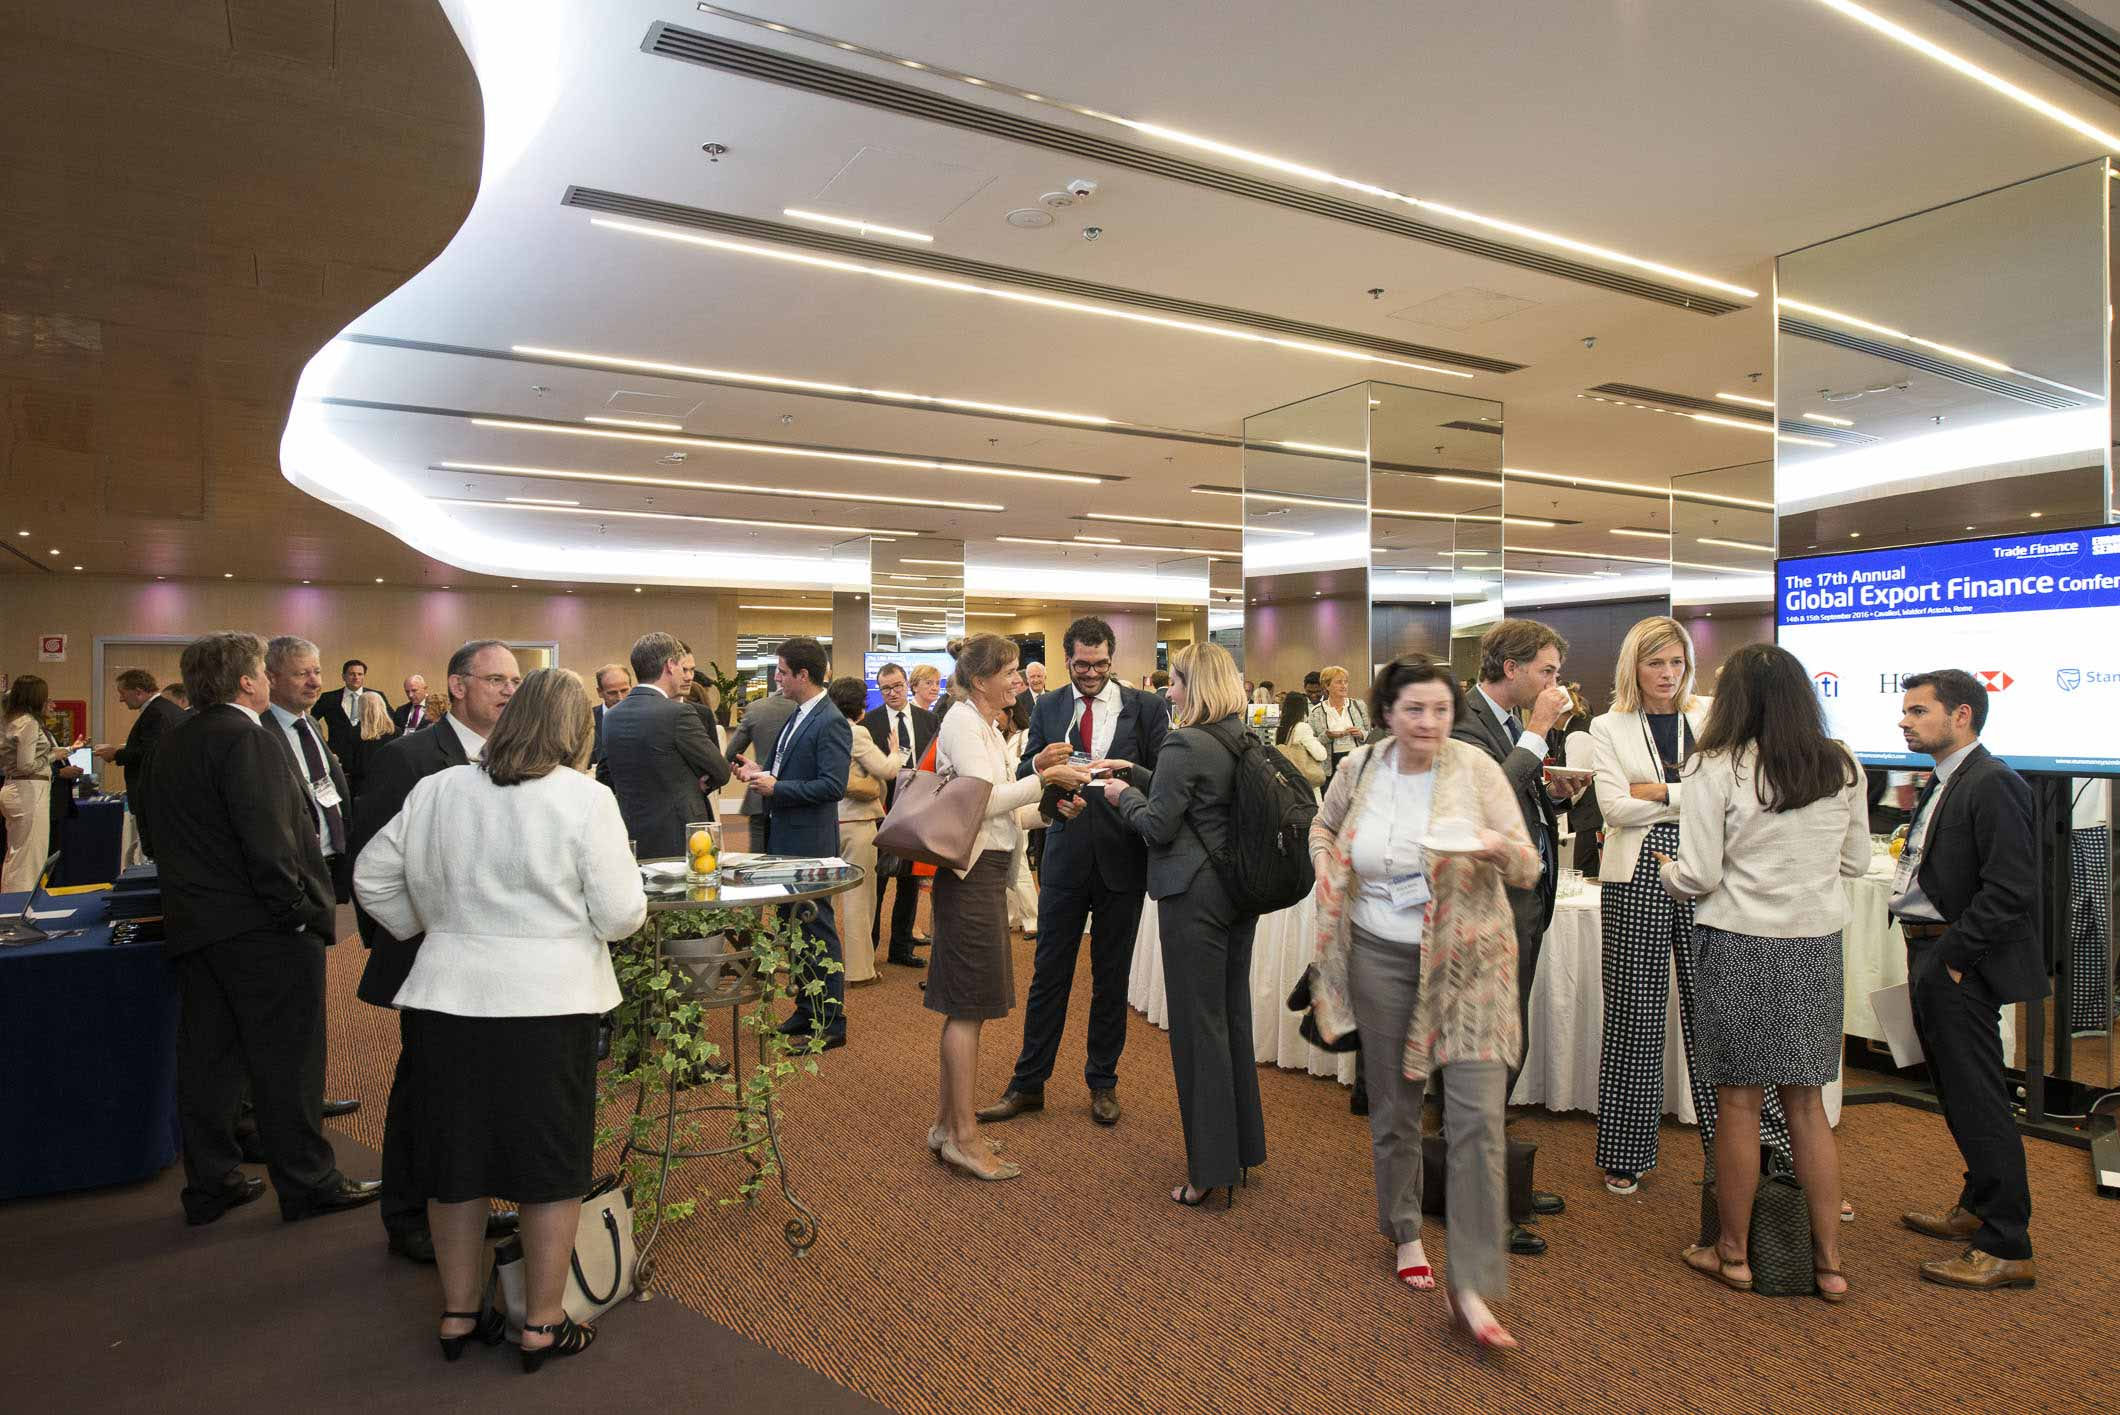 Conference Photographer in Rome – 17th Global Export Finance Conference #16